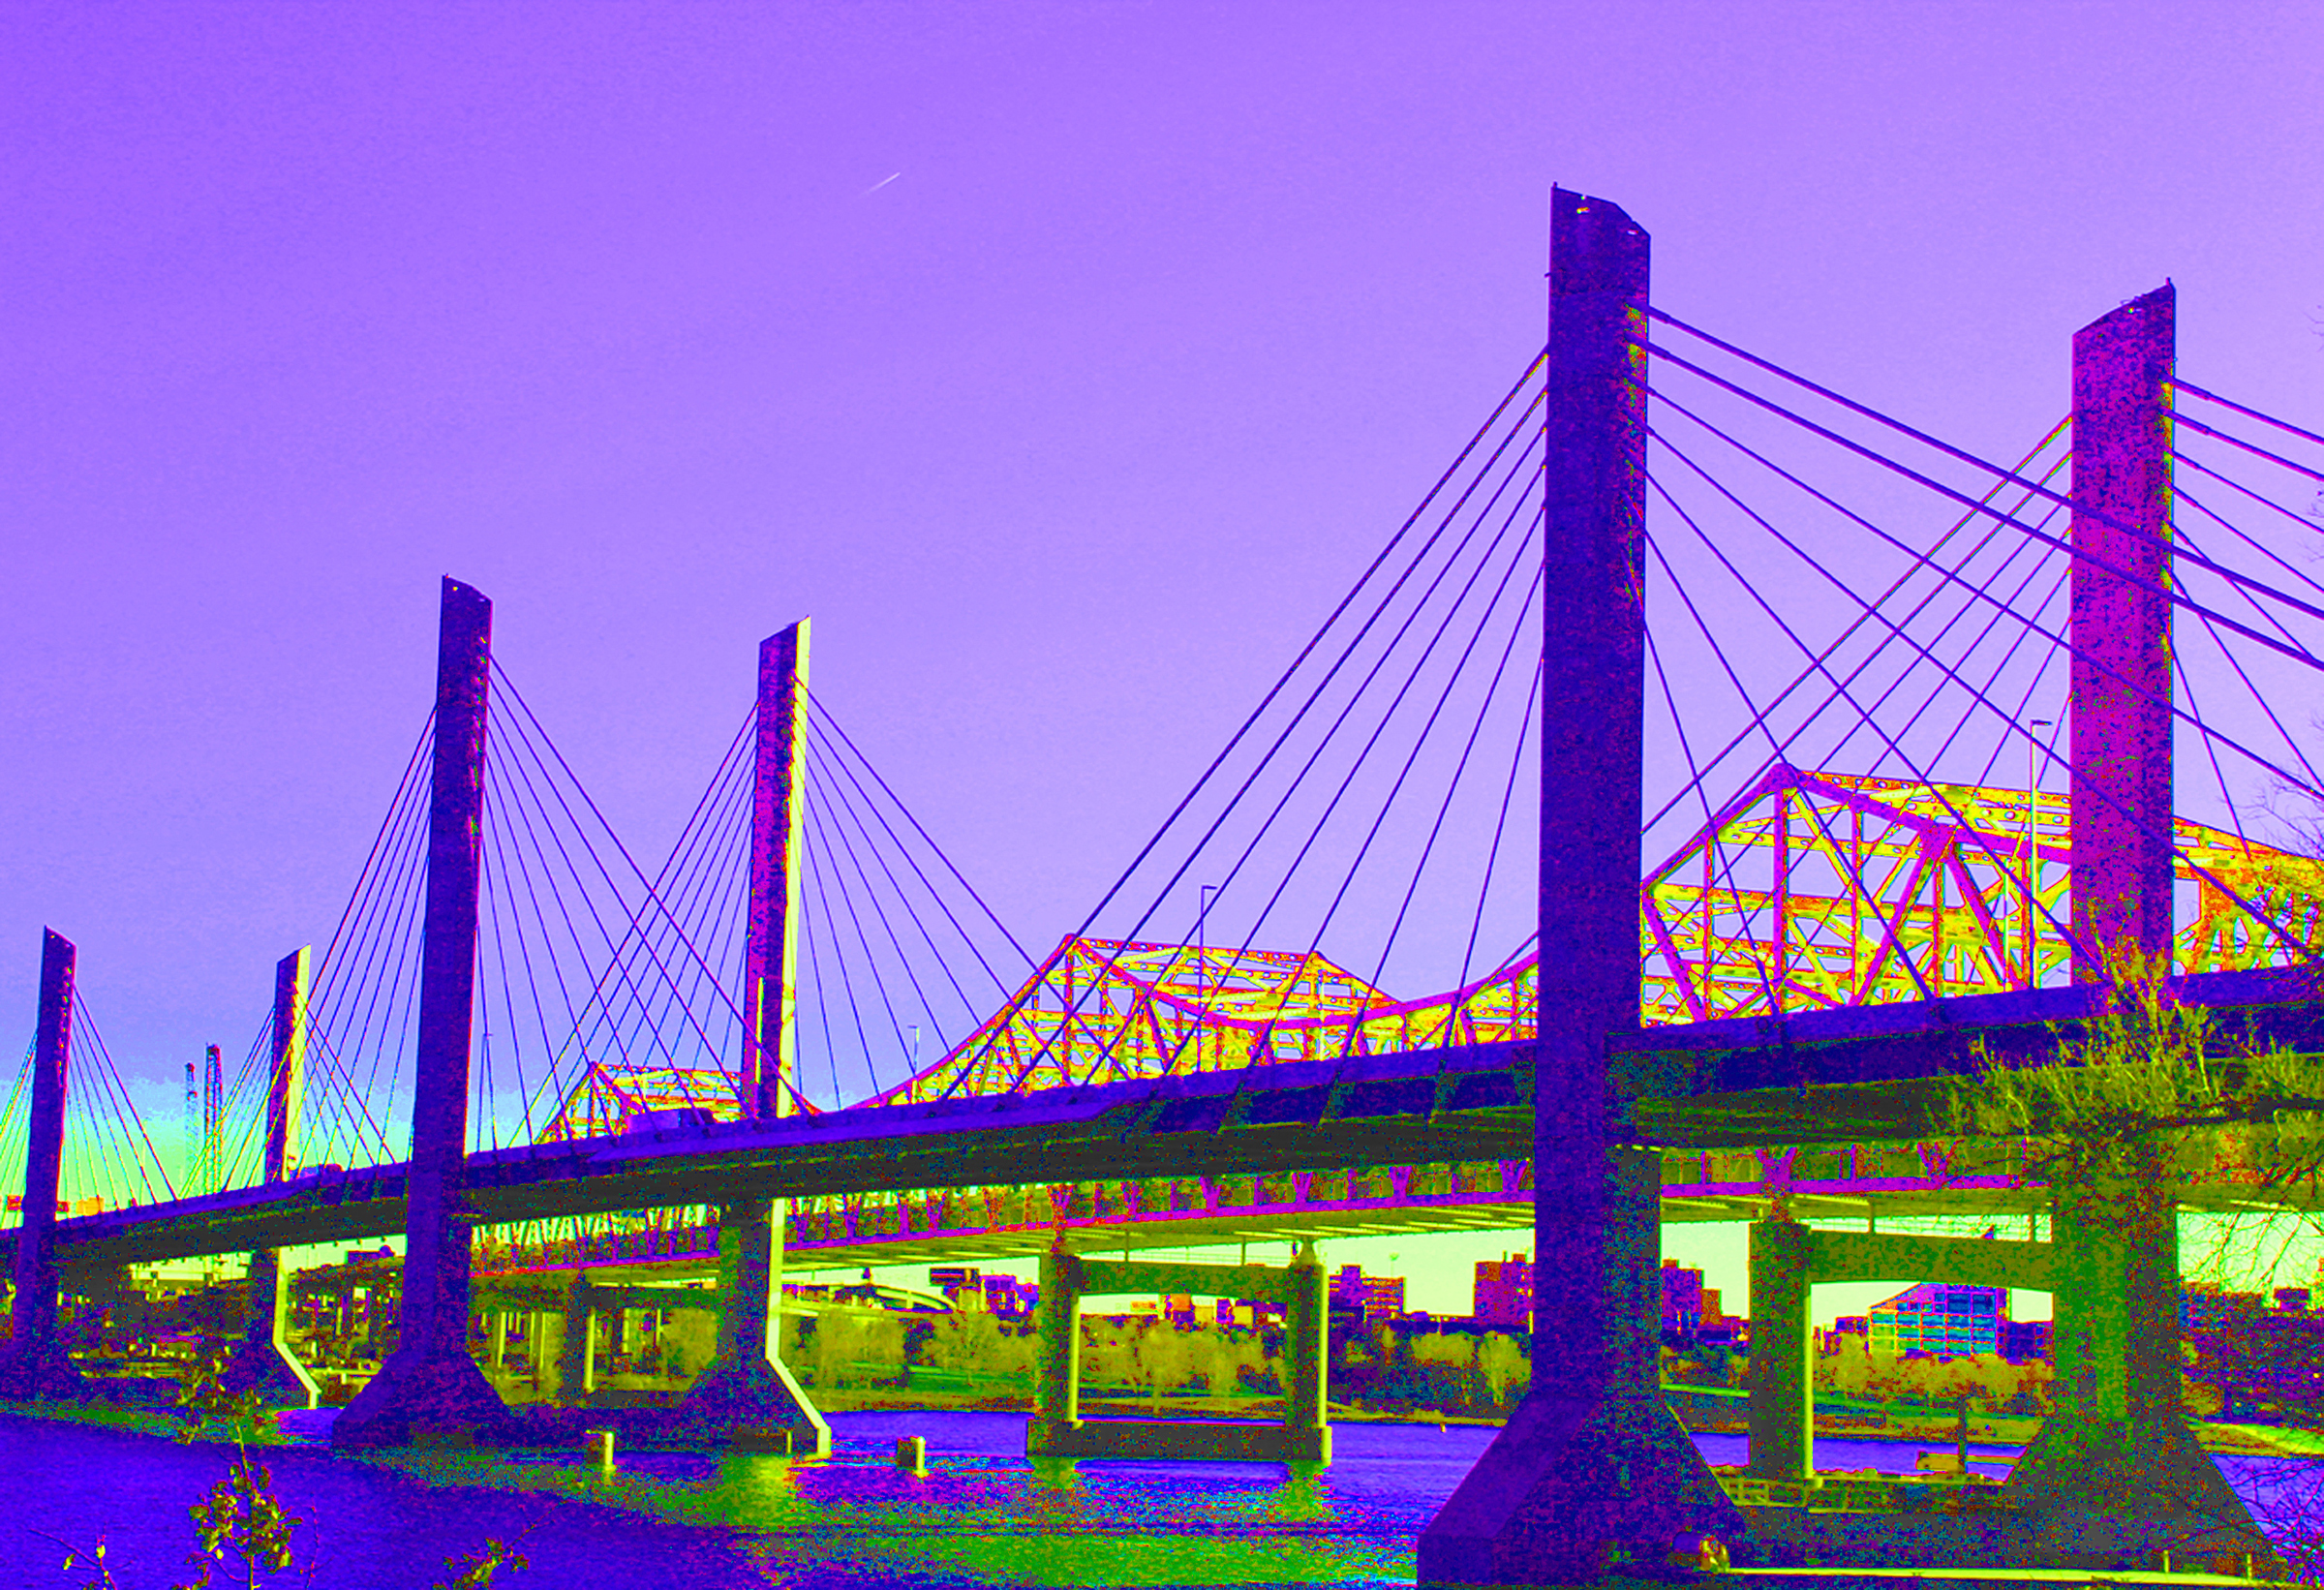 """""""Suspension V (Lincoln Bridge)"""" by Patricia Brock, 16x20in, photography on archival photo paper (matted and framed), $225 